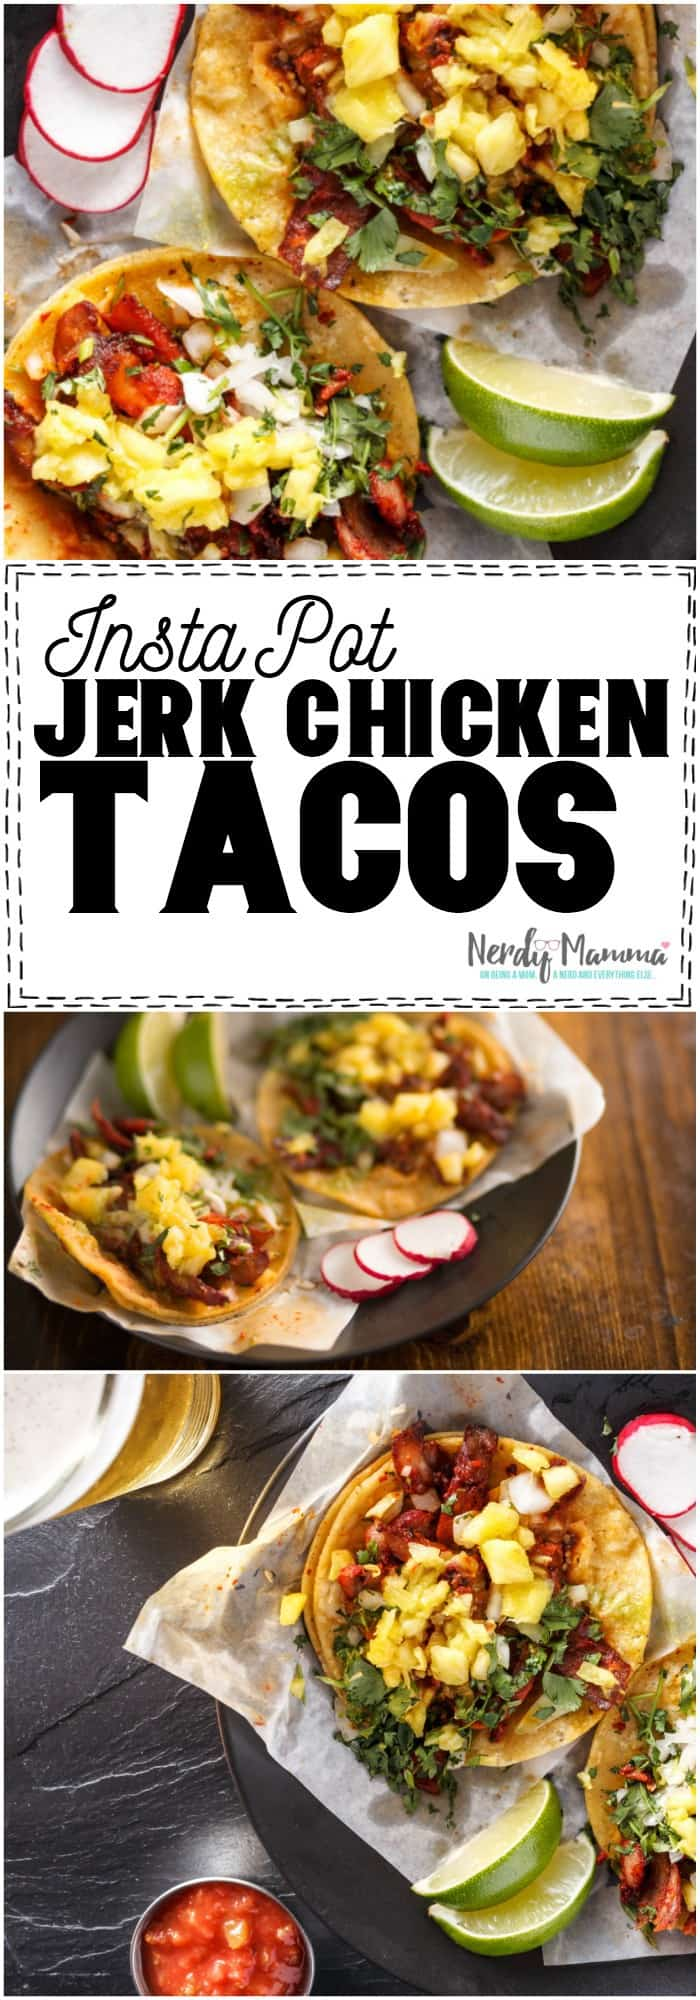 Oh, My, WOW. This recipe for Instant Pot Jerk Chicken Tacos is so simple--and blows my mind. #taco #recipe #tacorecipe #chicken #instantpot #instantpotrecipe #instantpotchicken #jerkchicken #yummy